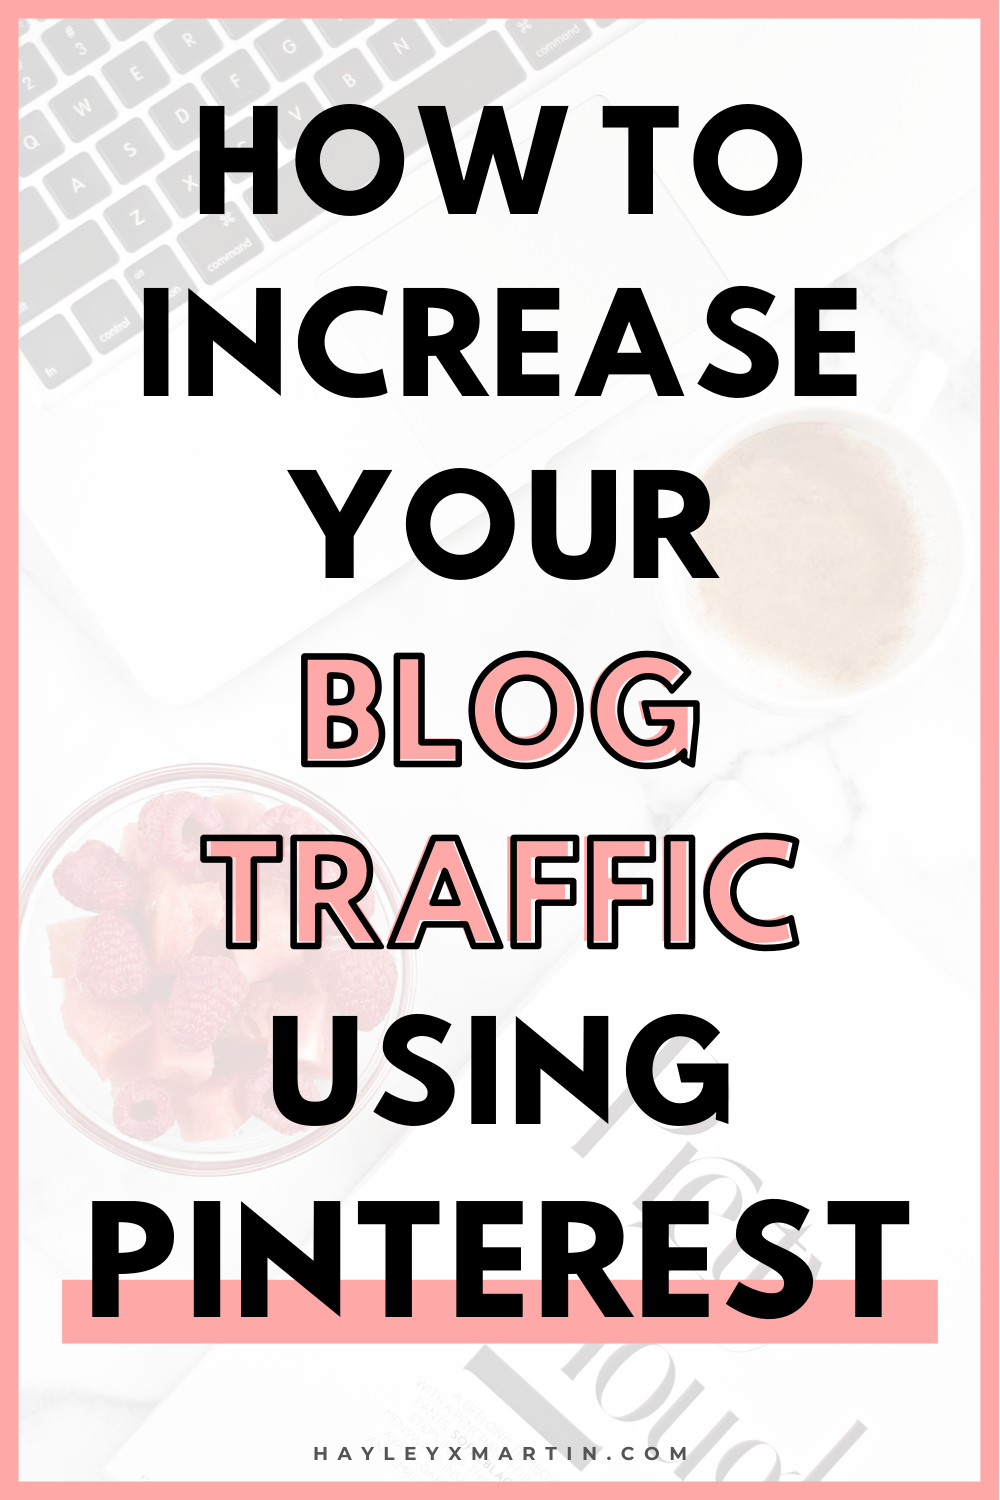 How to increase your blog traffic using pinterest